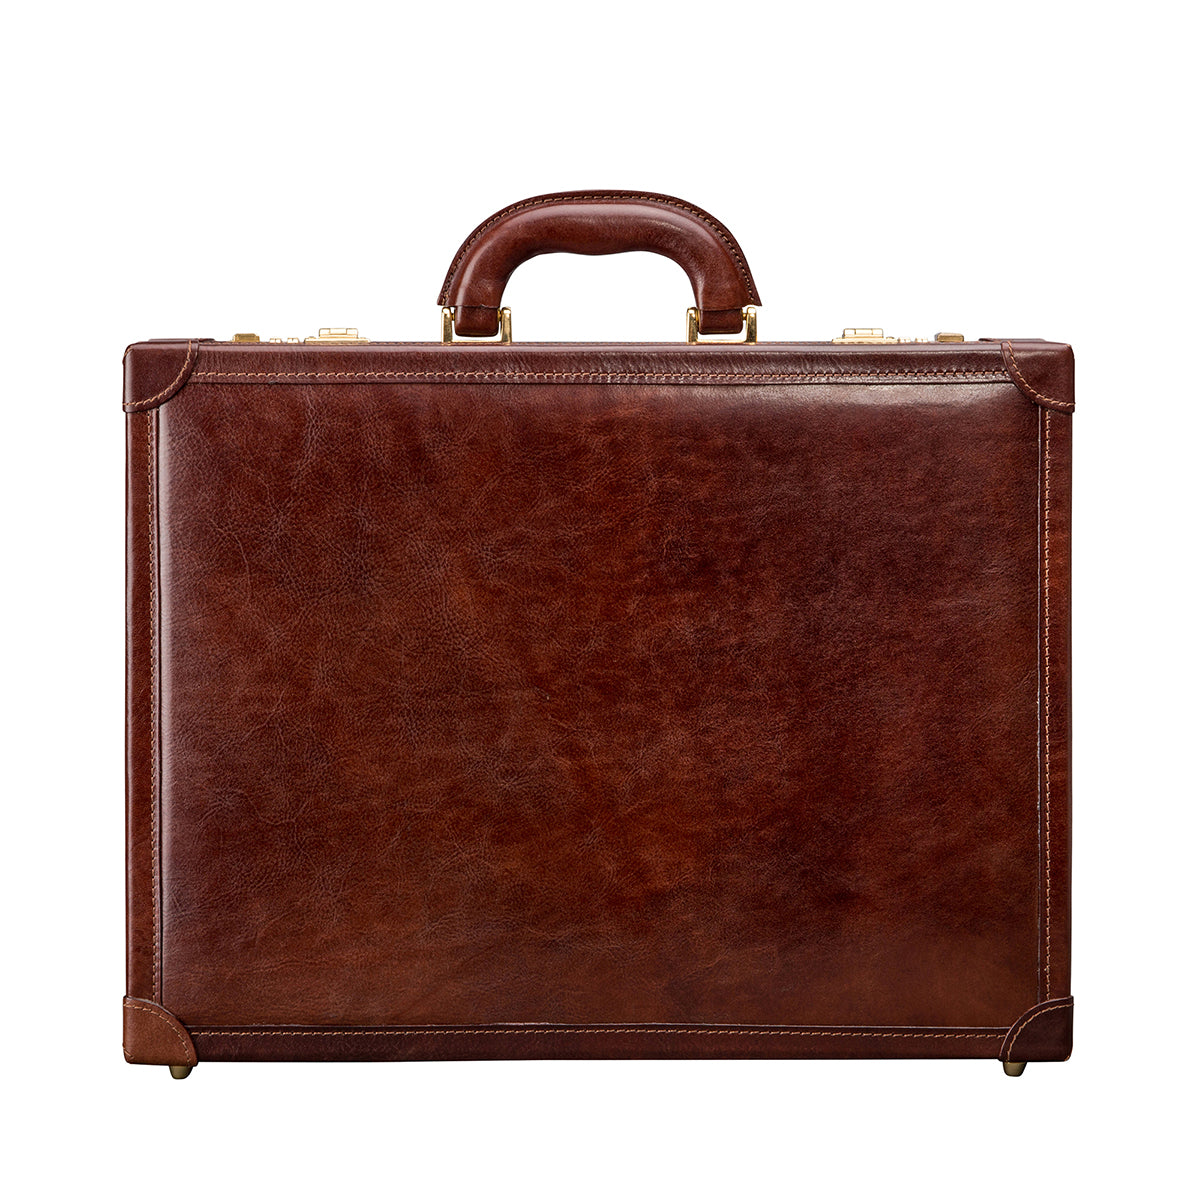 Image 1 of the 'Scanno' Slim Chestnut Veg-Tanned Leather Business Attaché Case